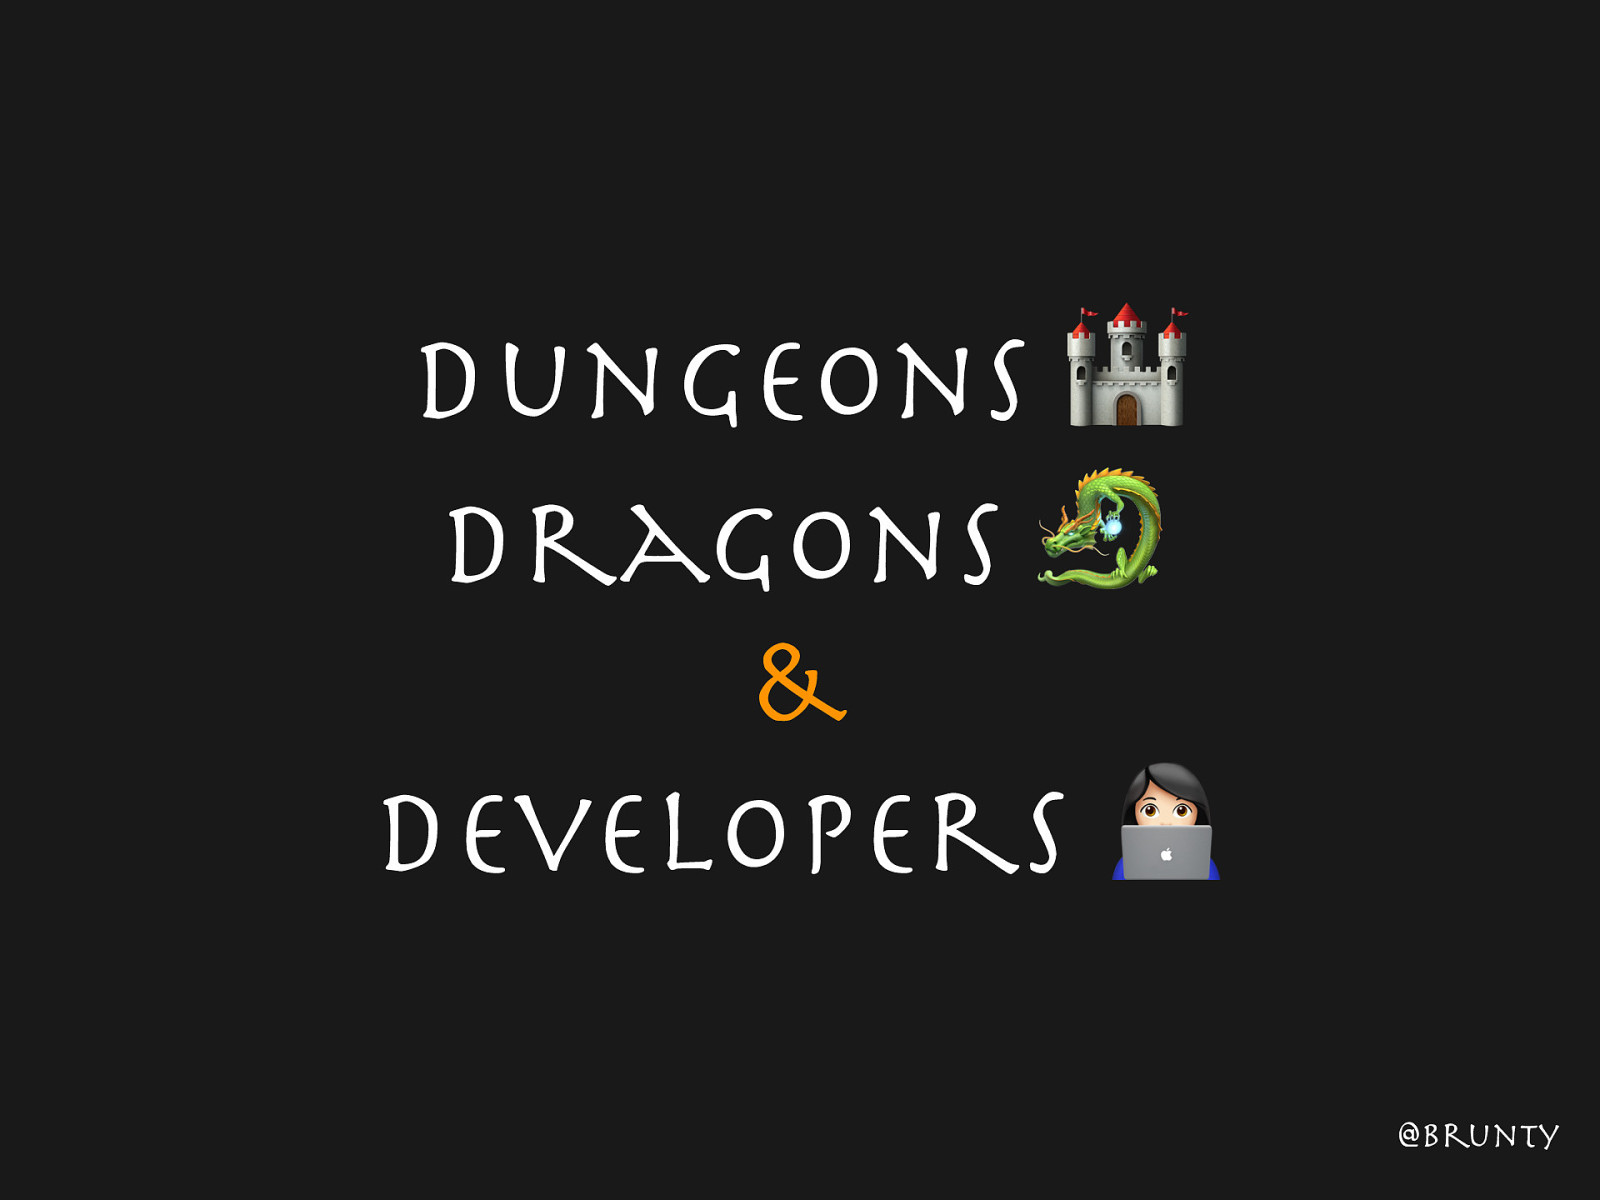 Dungeons, Dragons & Developers